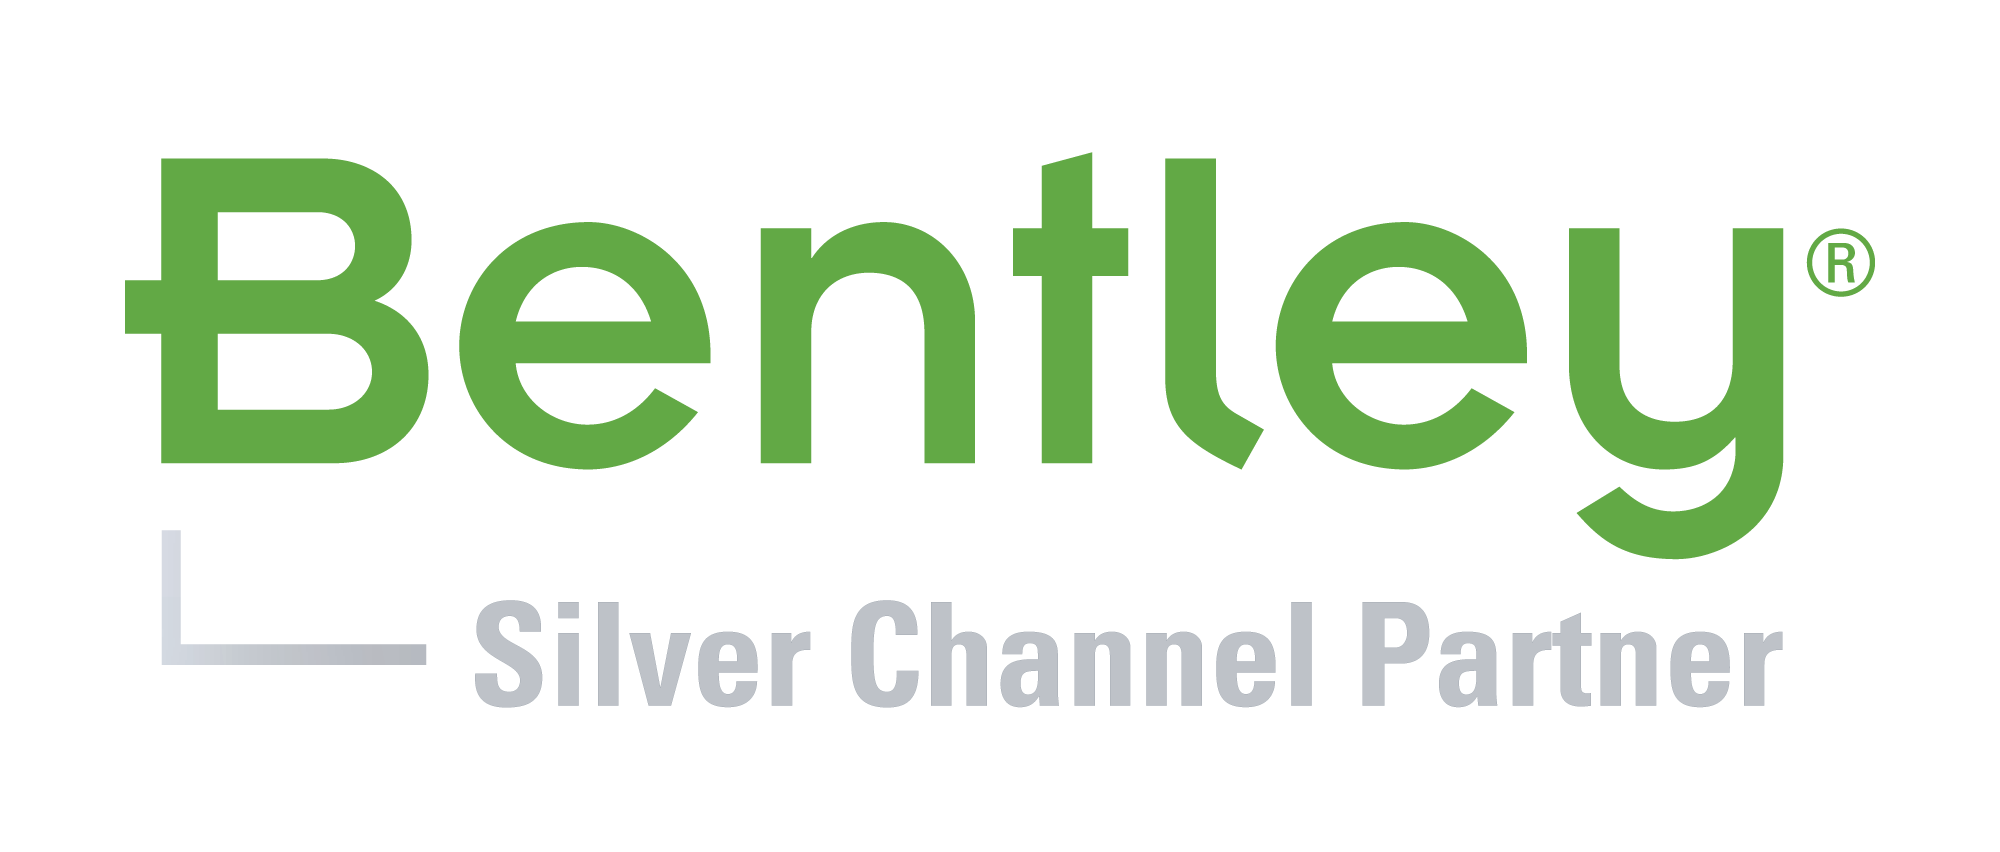 Bentley Silver Channel Partner